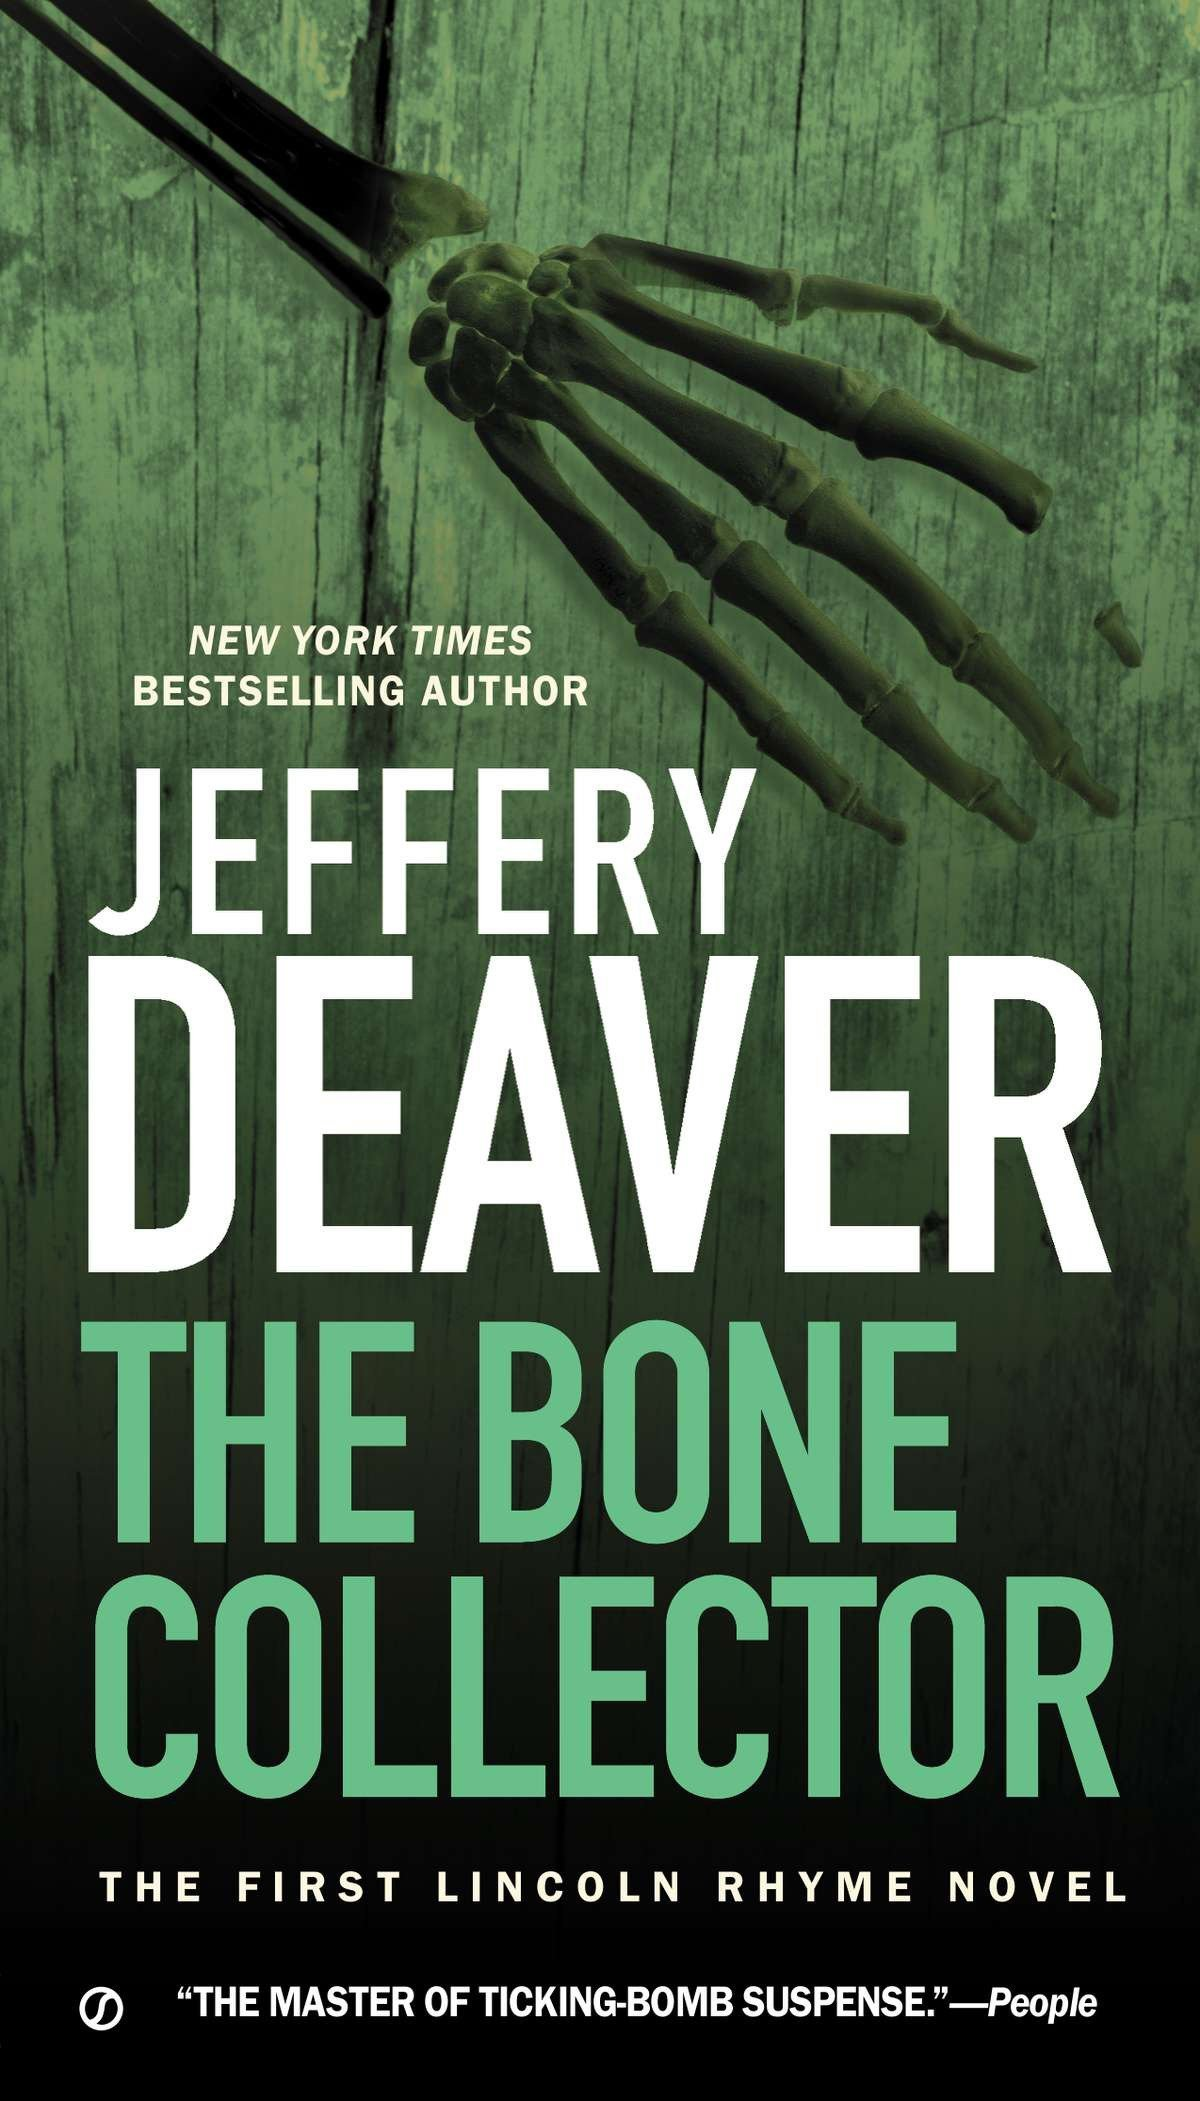 The Bone Collector (Lincoln Rhyme): Amazon.es: Jeffery Deaver: Libros en idiomas extranjeros